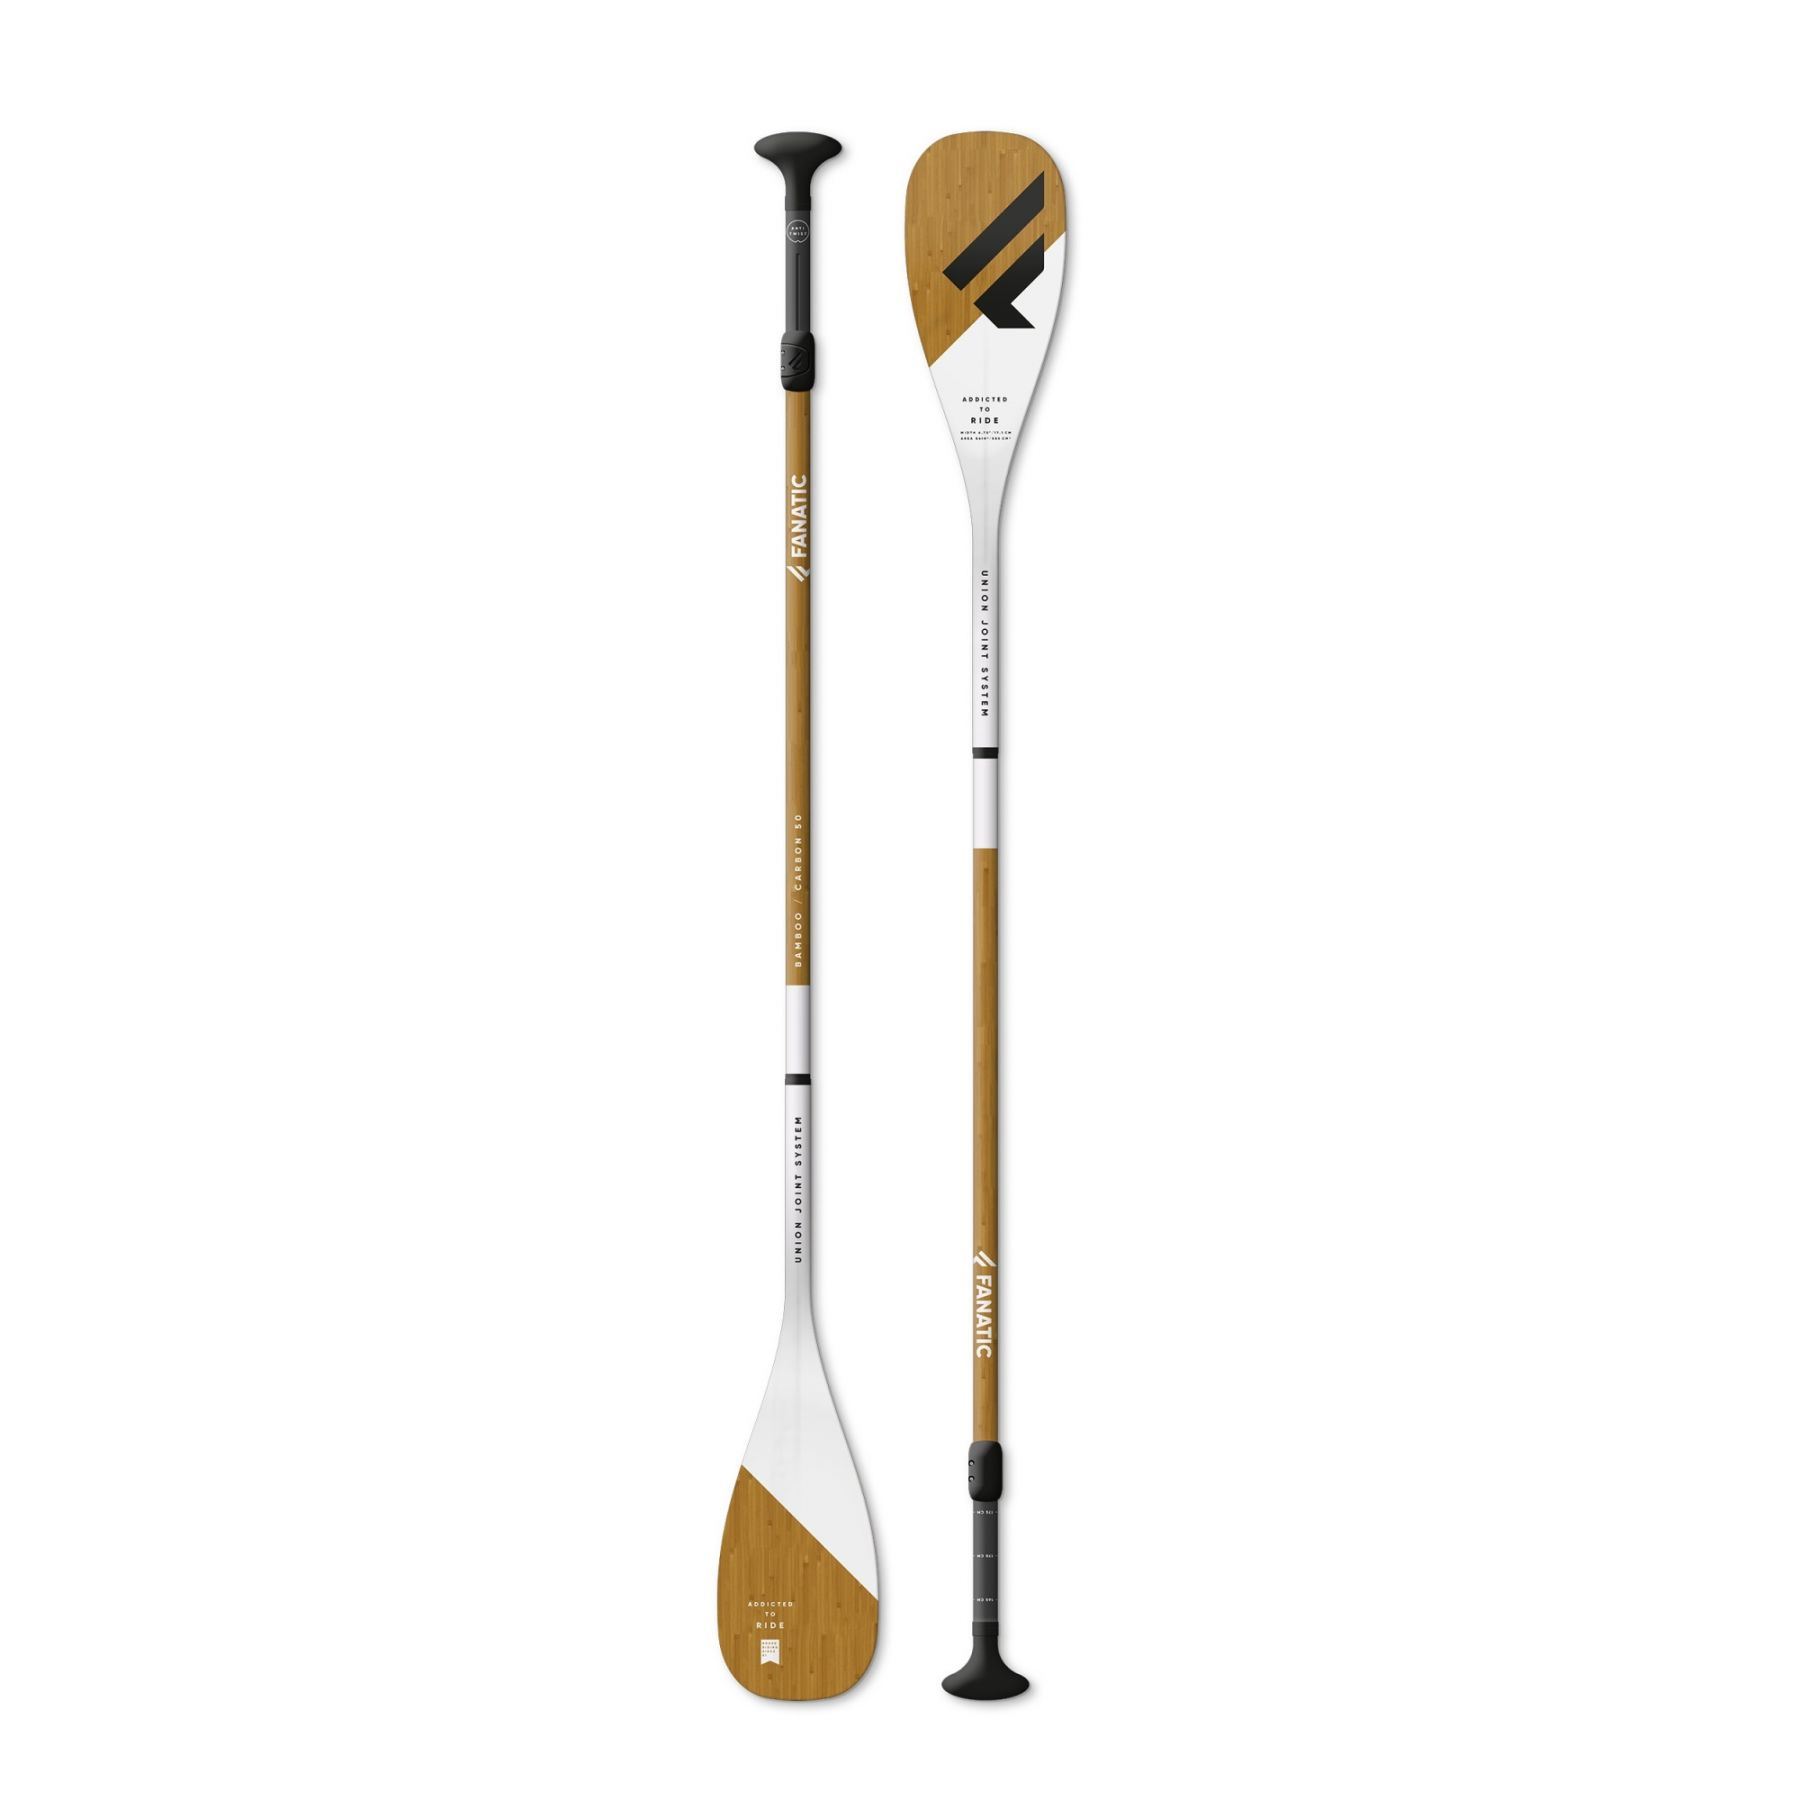 Remo de paddle surf Fanatic Carbon 50 ajustable